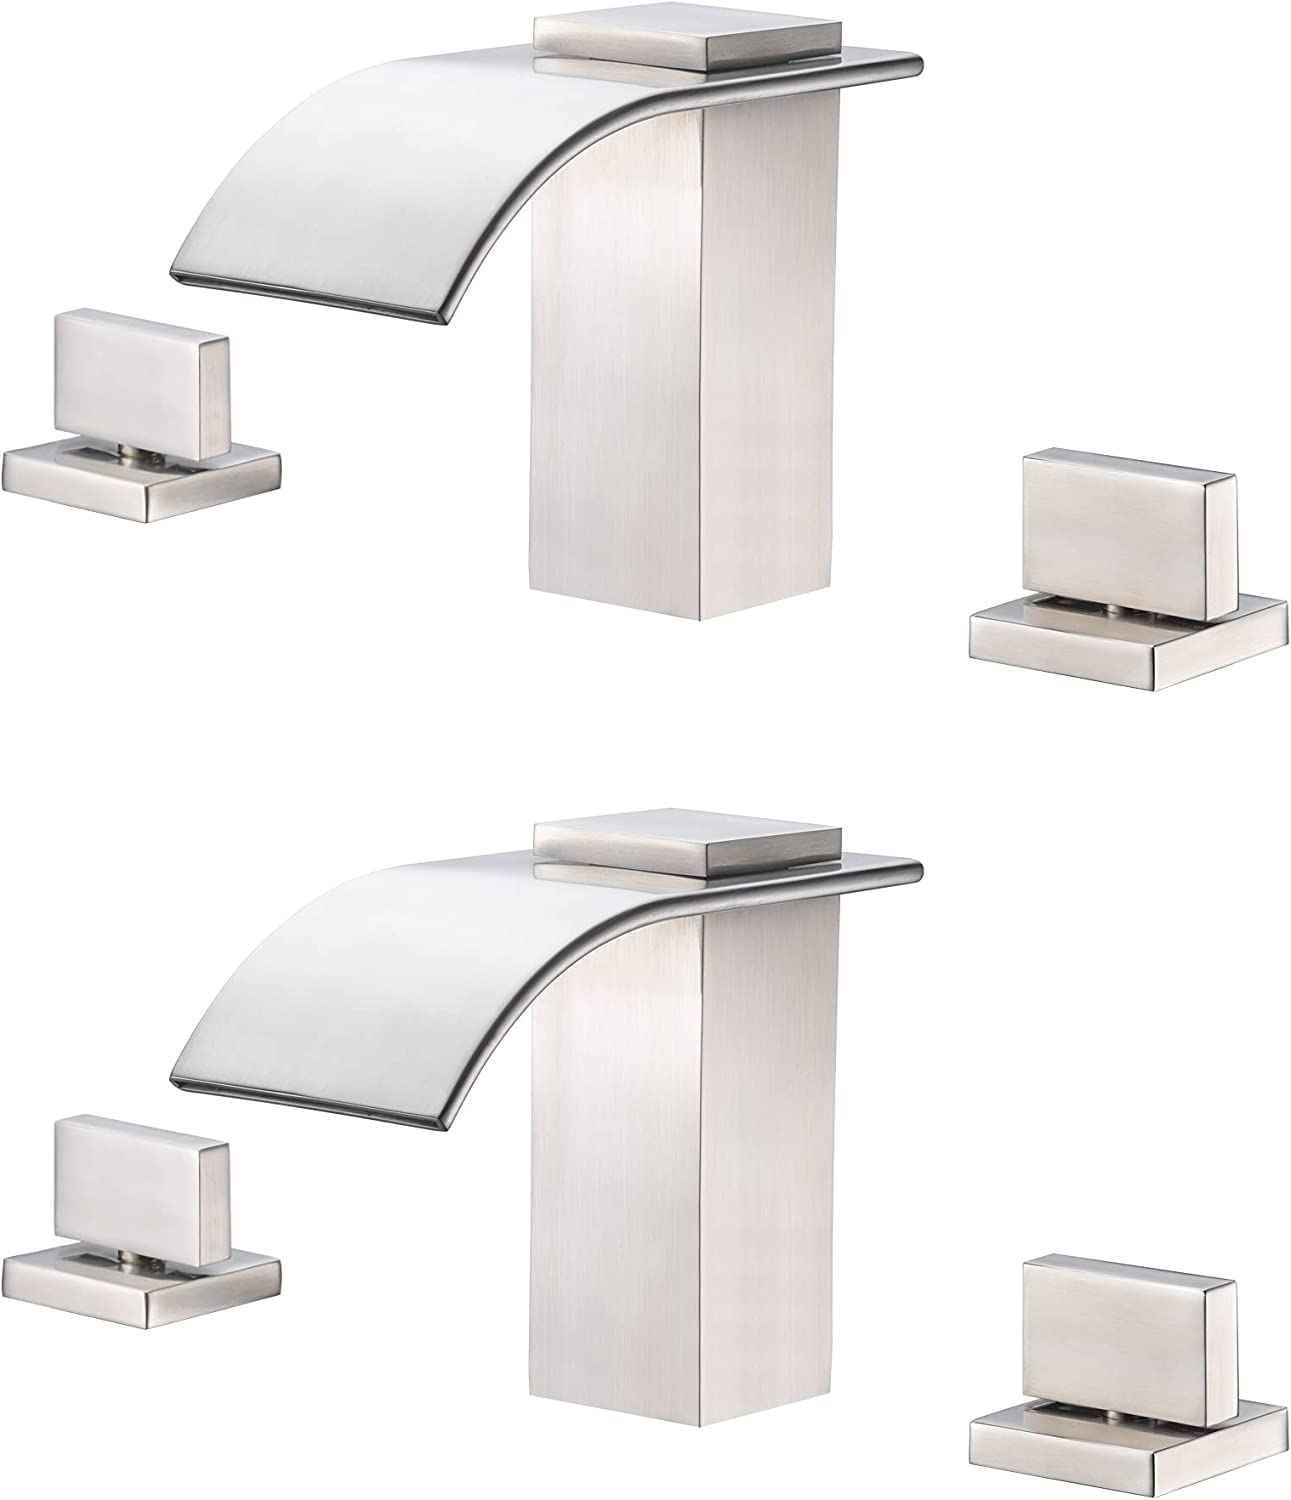 Widespread Bathroom Faucet Now Max 81% OFF free shipping S1408NW + S2143NW Bu Roman Tub